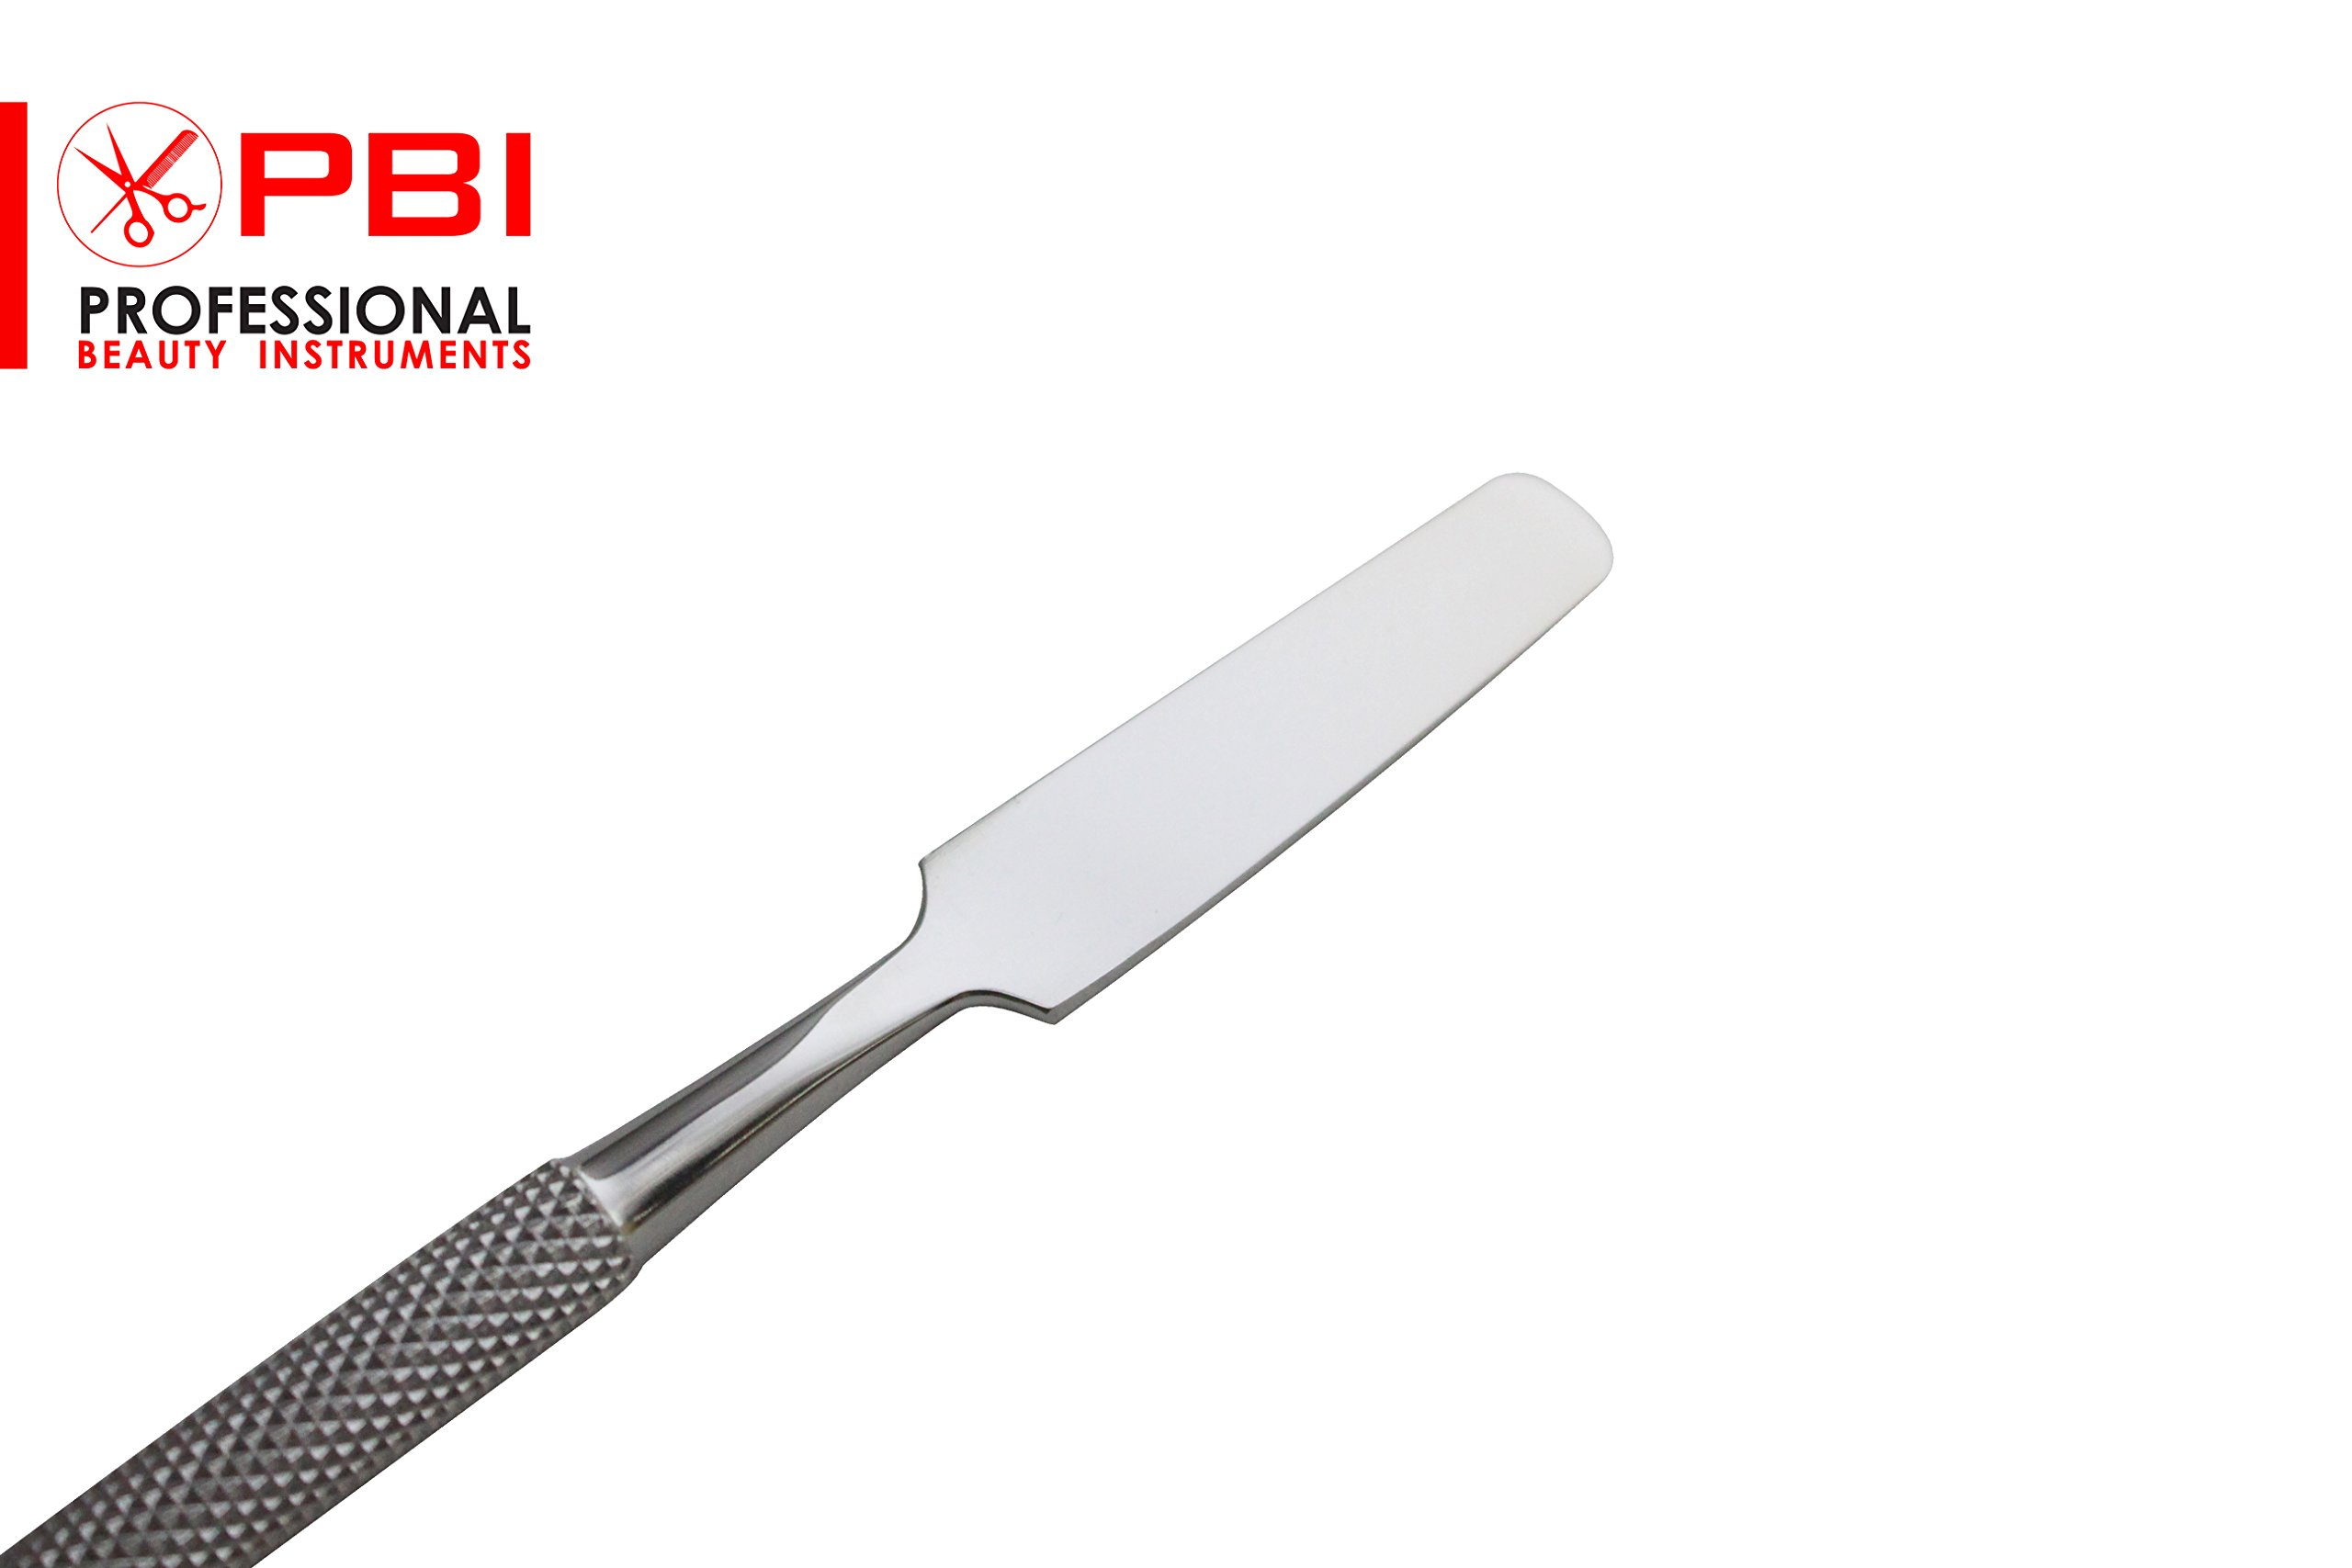 Dental Amalgam, Zinc Phosphate Mixing Spatula, Cement Spatula, Made Of Stainless Steel ( 5 Piece Set ) From PBI